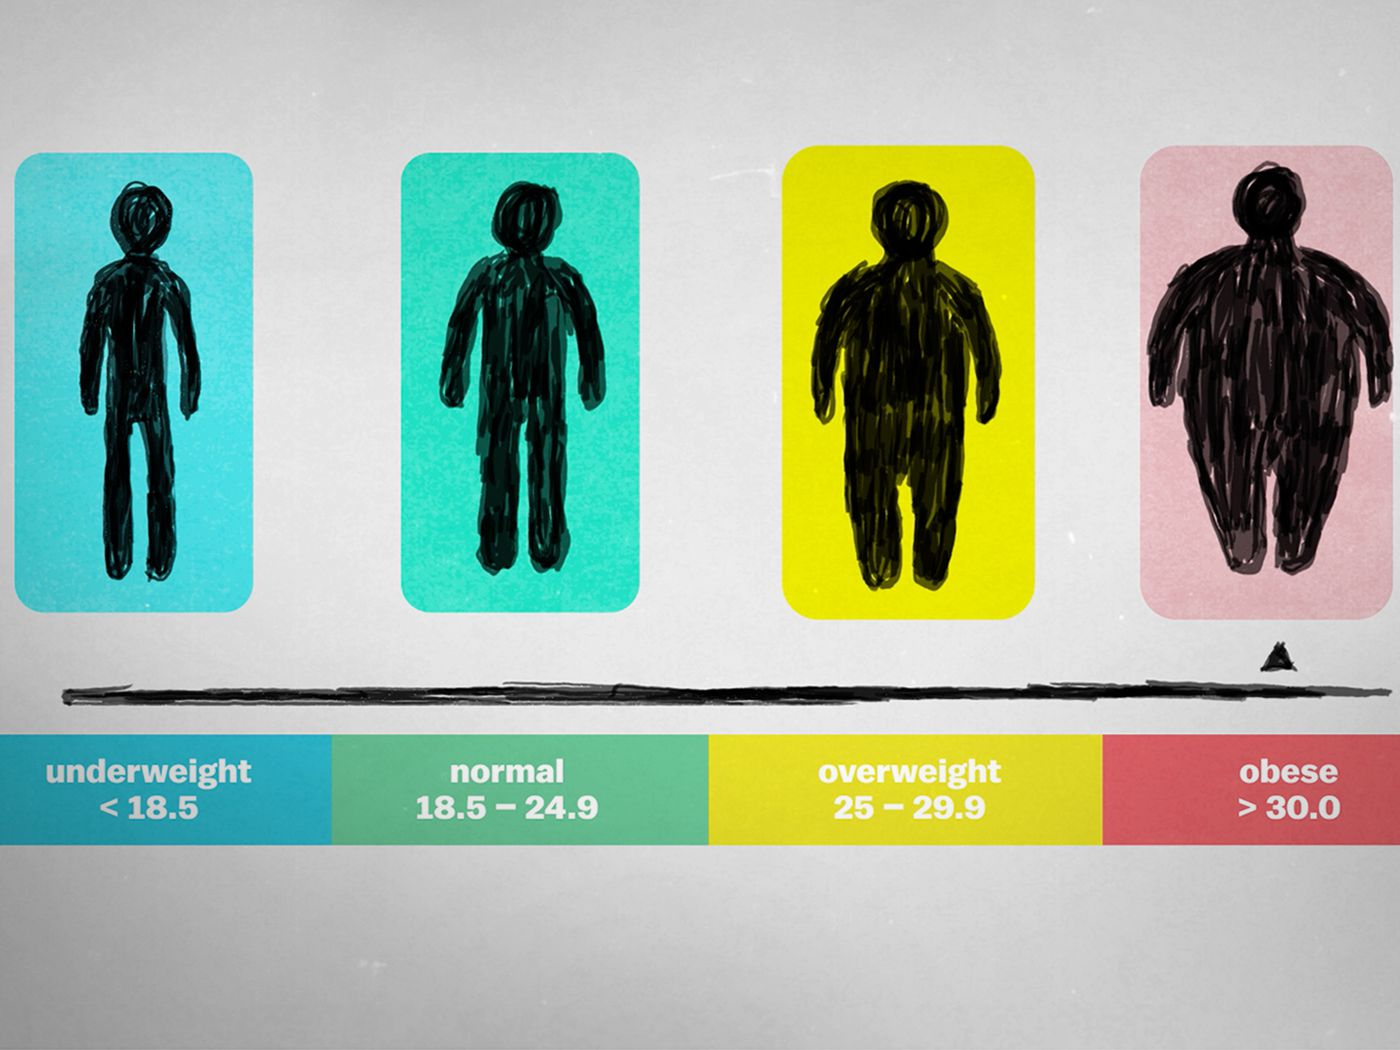 What BMI doesn't tell you about your health - Vox